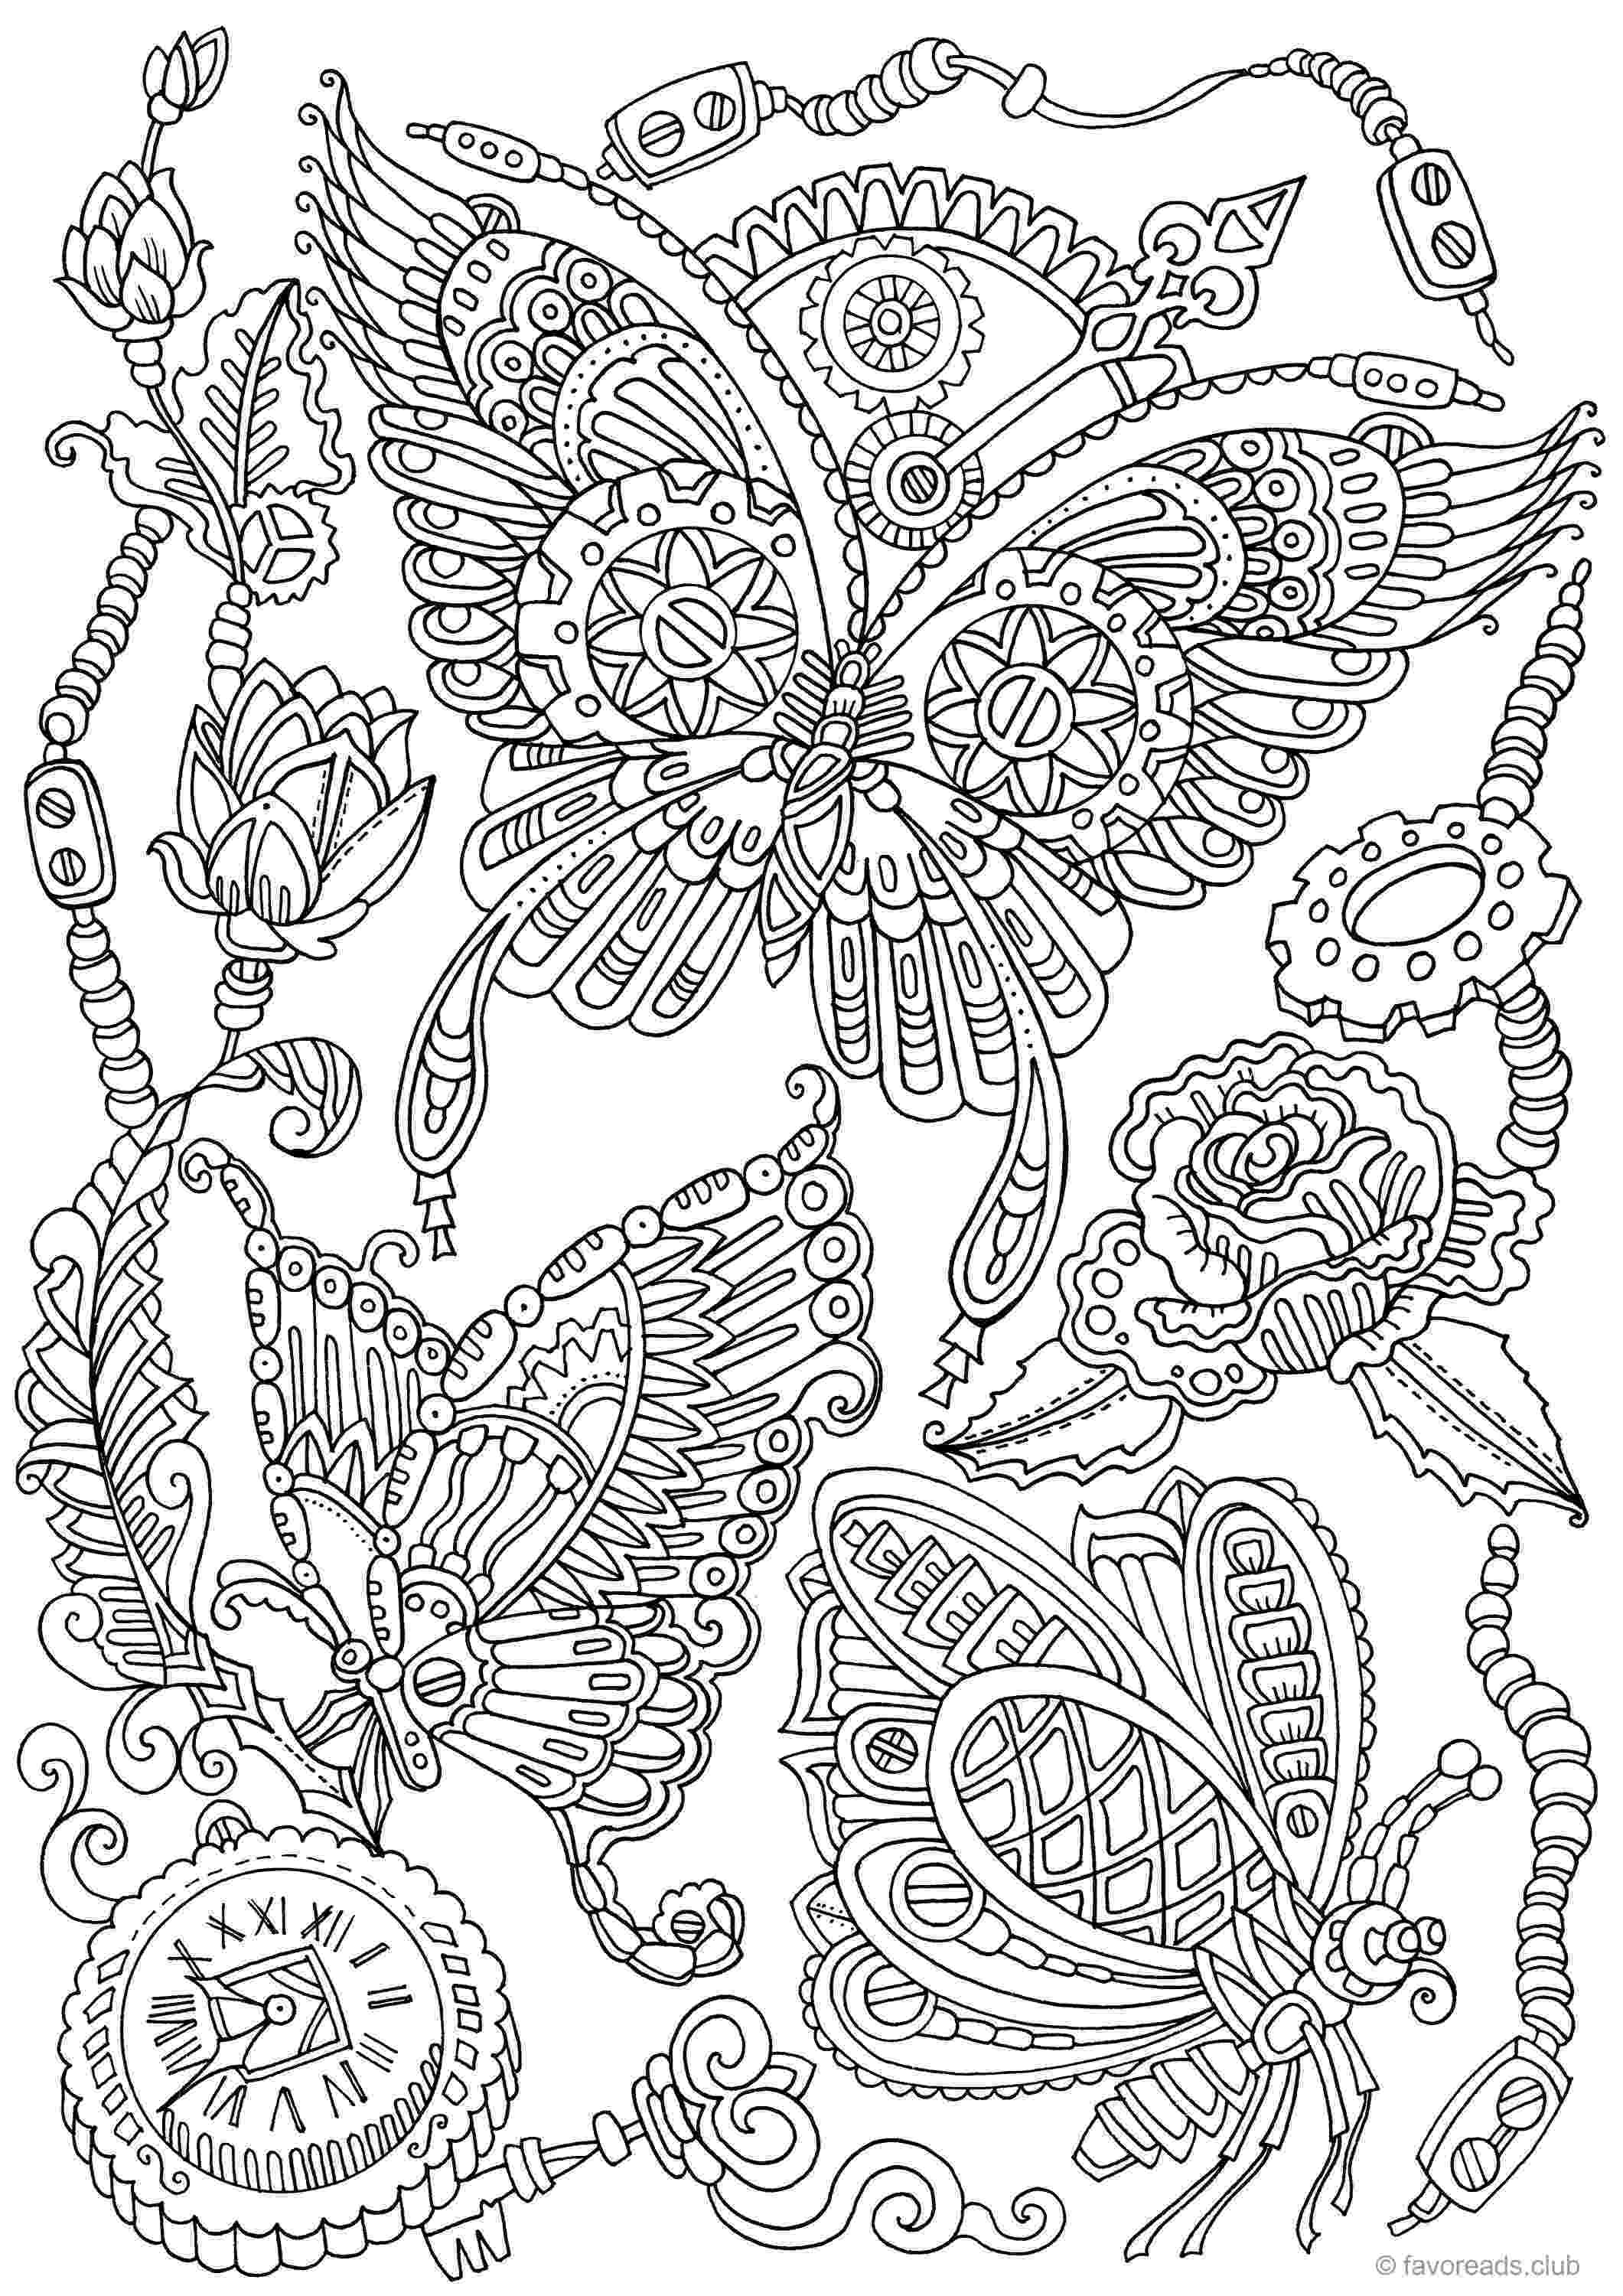 coloring book for adults tokopedia steampunk butterflies printable adult coloring page from tokopedia adults coloring for book